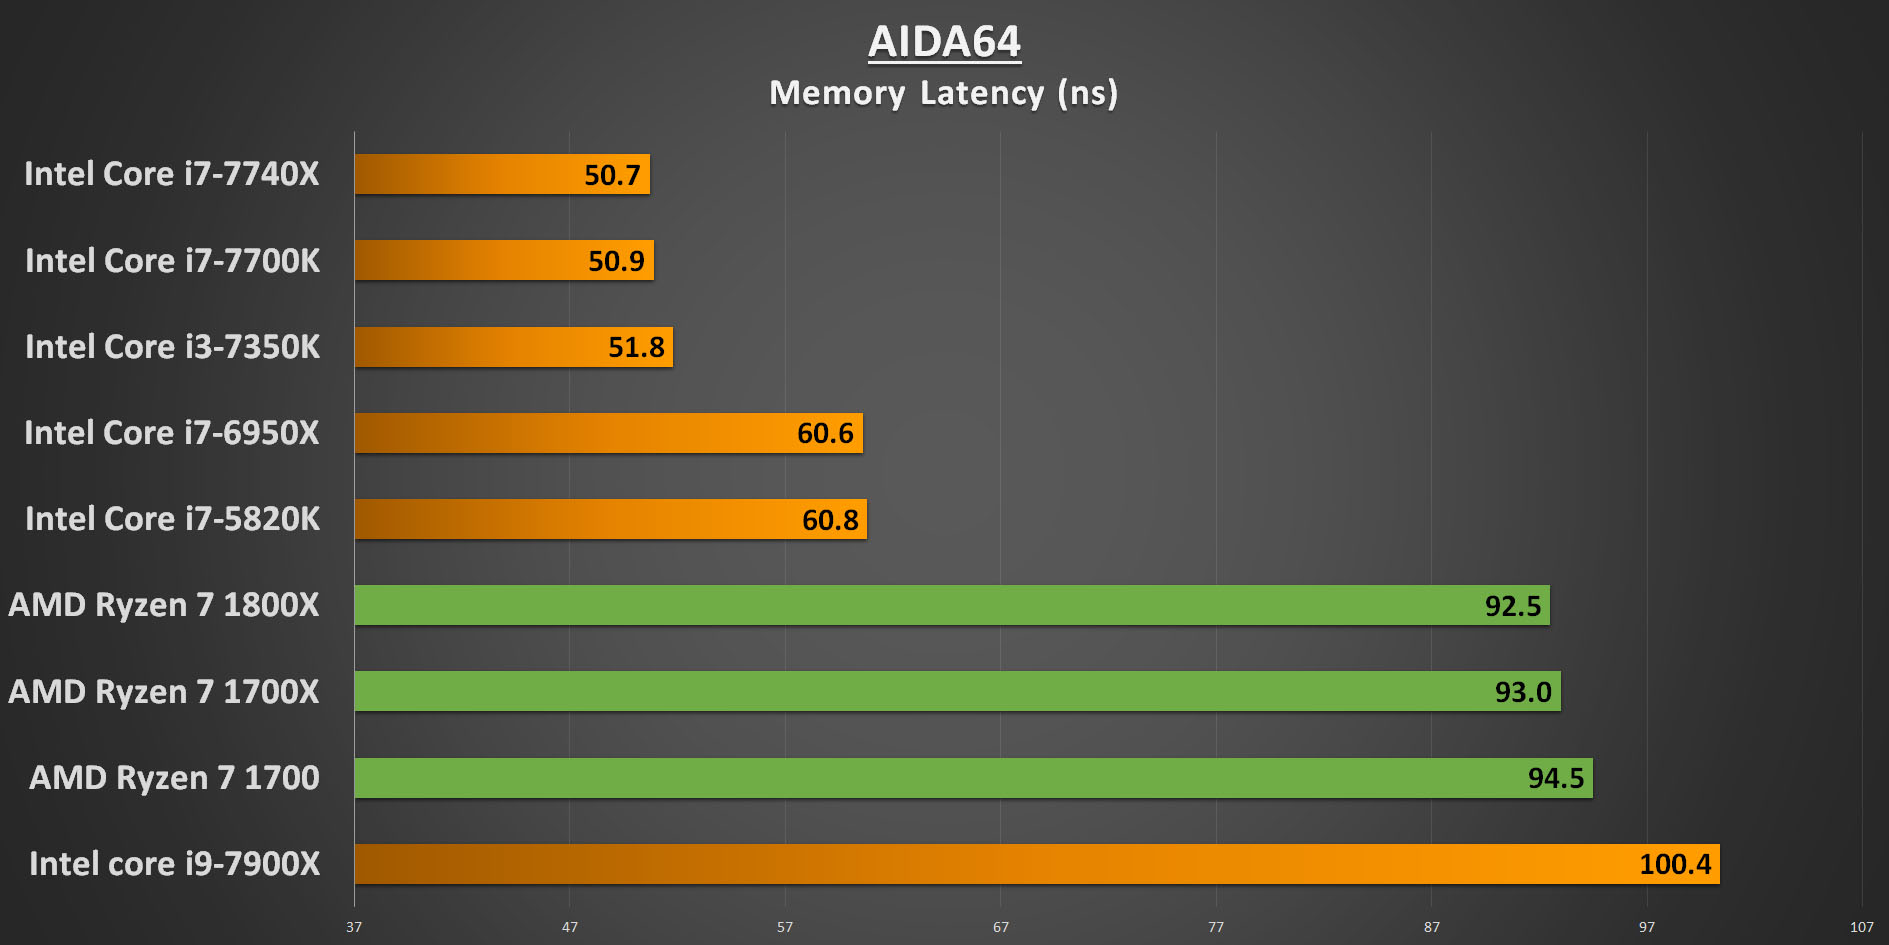 Ryzen 7 AIDA64 Memory Latency